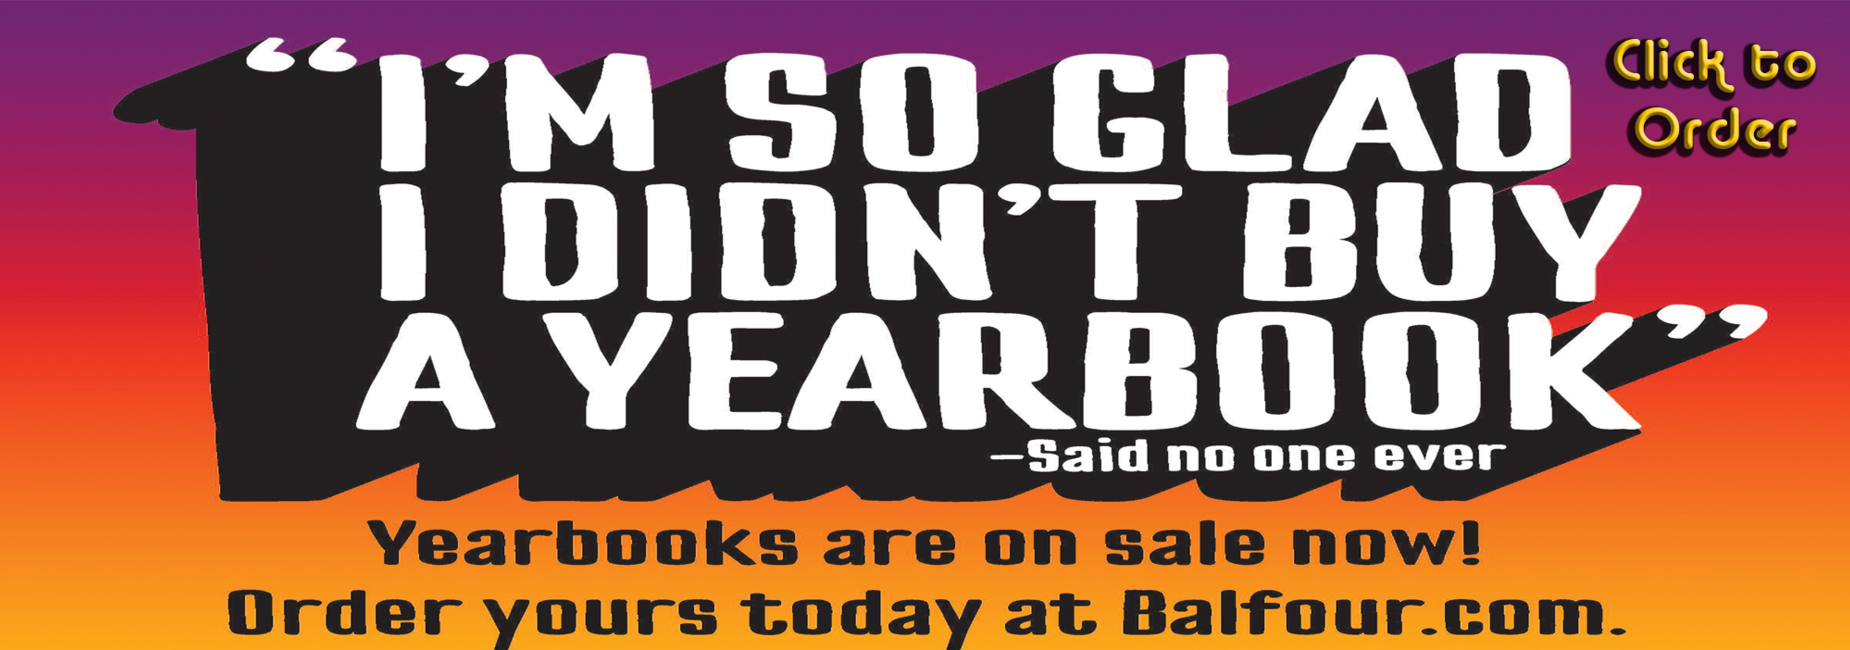 Yearbook Sale Click to Order